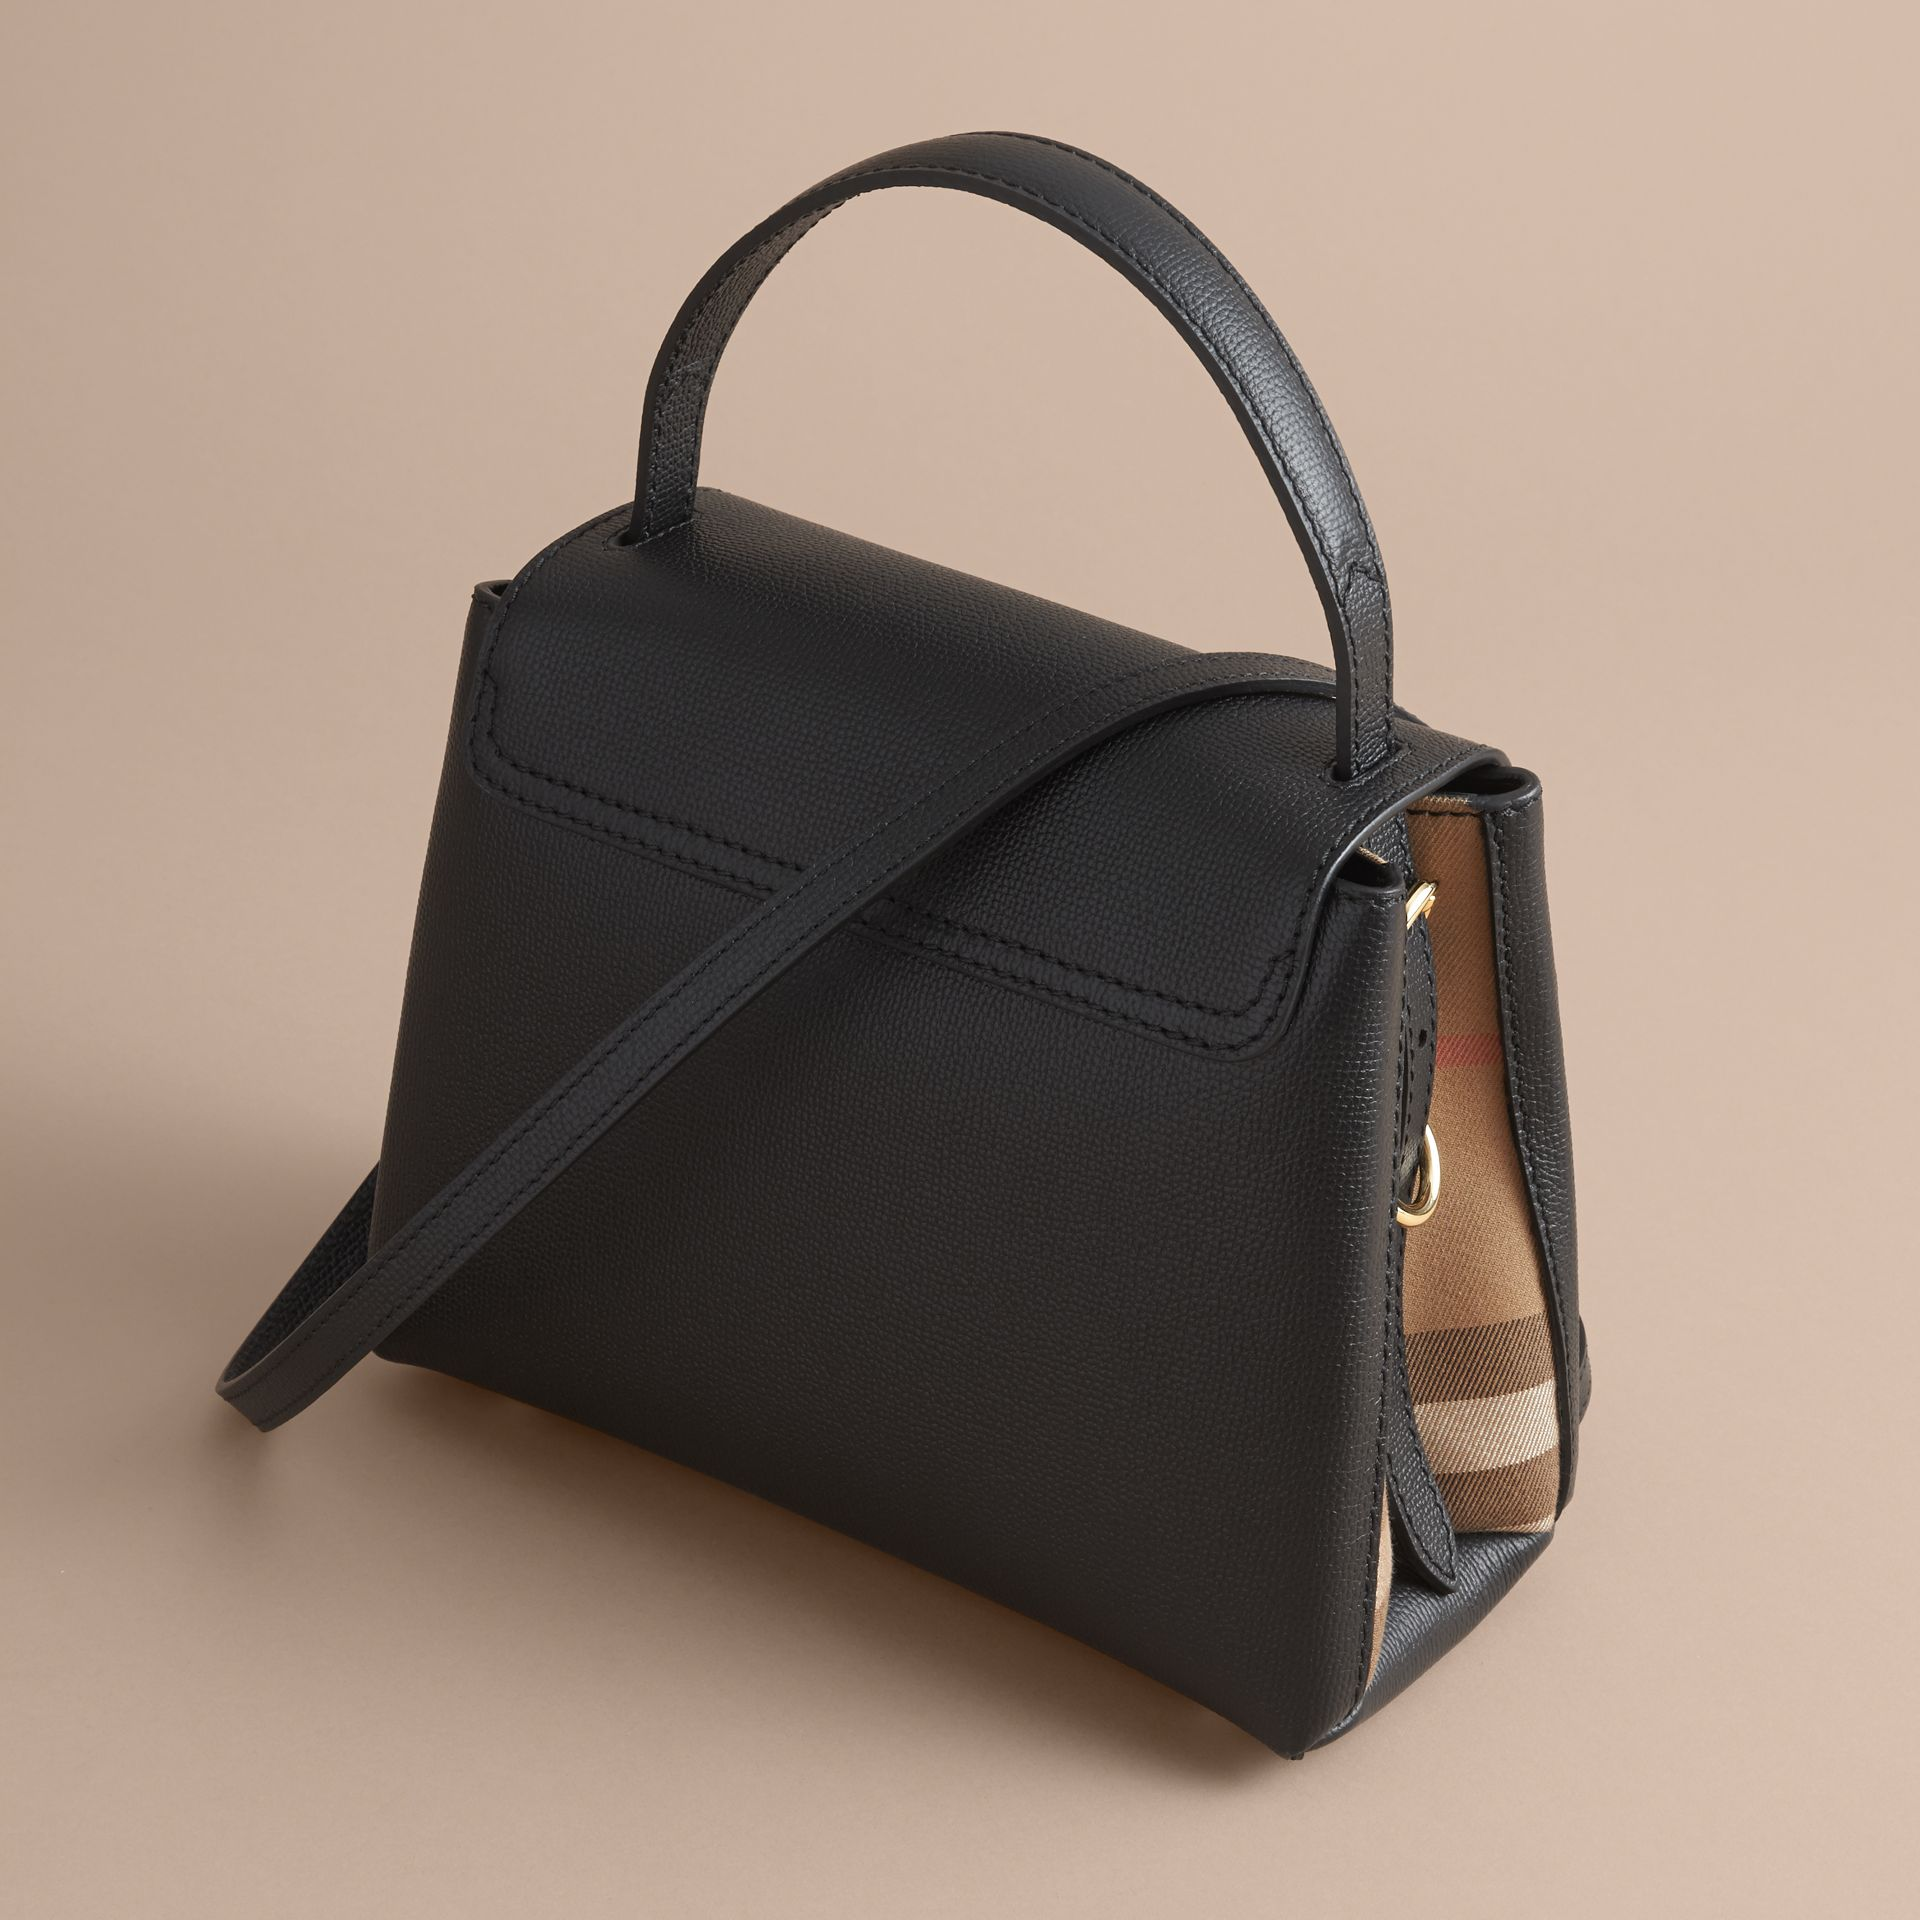 Small Grainy Leather and House Check Tote Bag in Black - Women | Burberry United Kingdom - gallery image 4